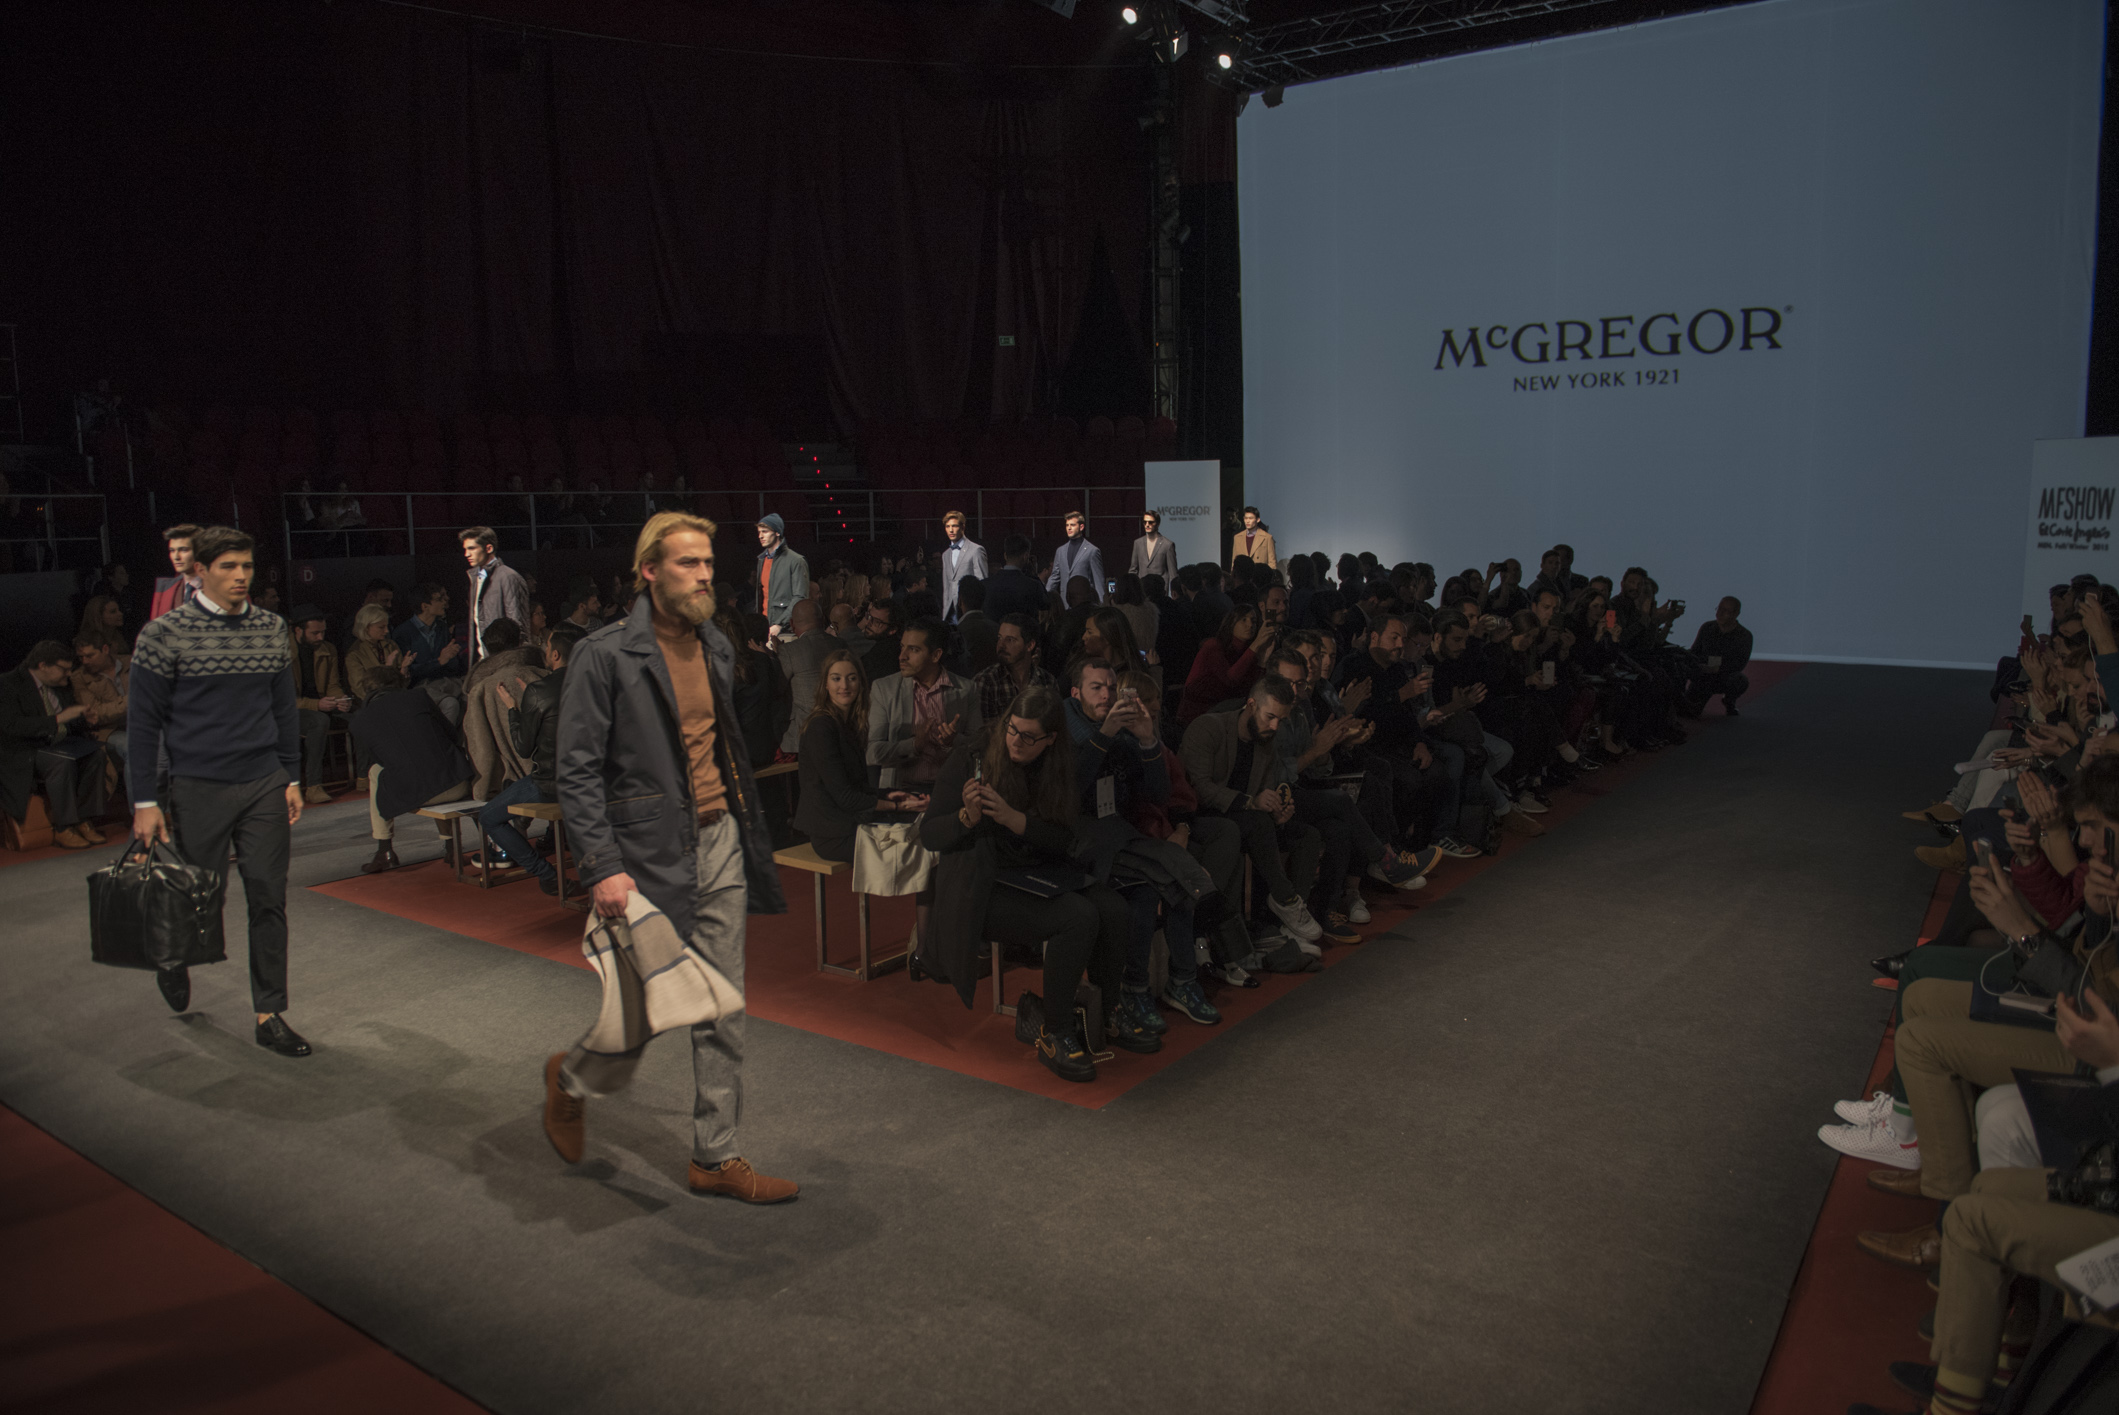 Mfshow Men: Mc Gregor